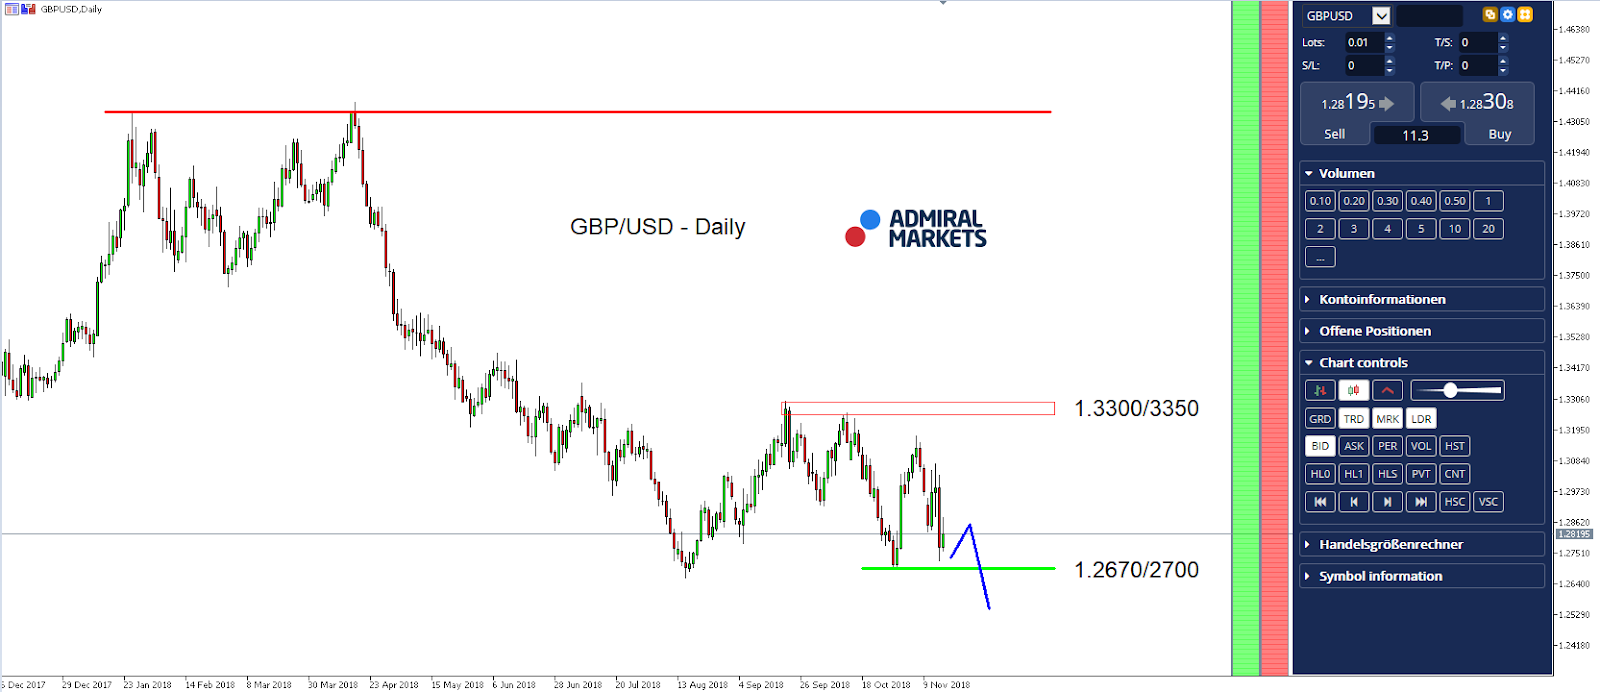 Find Out If The Brexit Mess Push GBP USD Below 12000